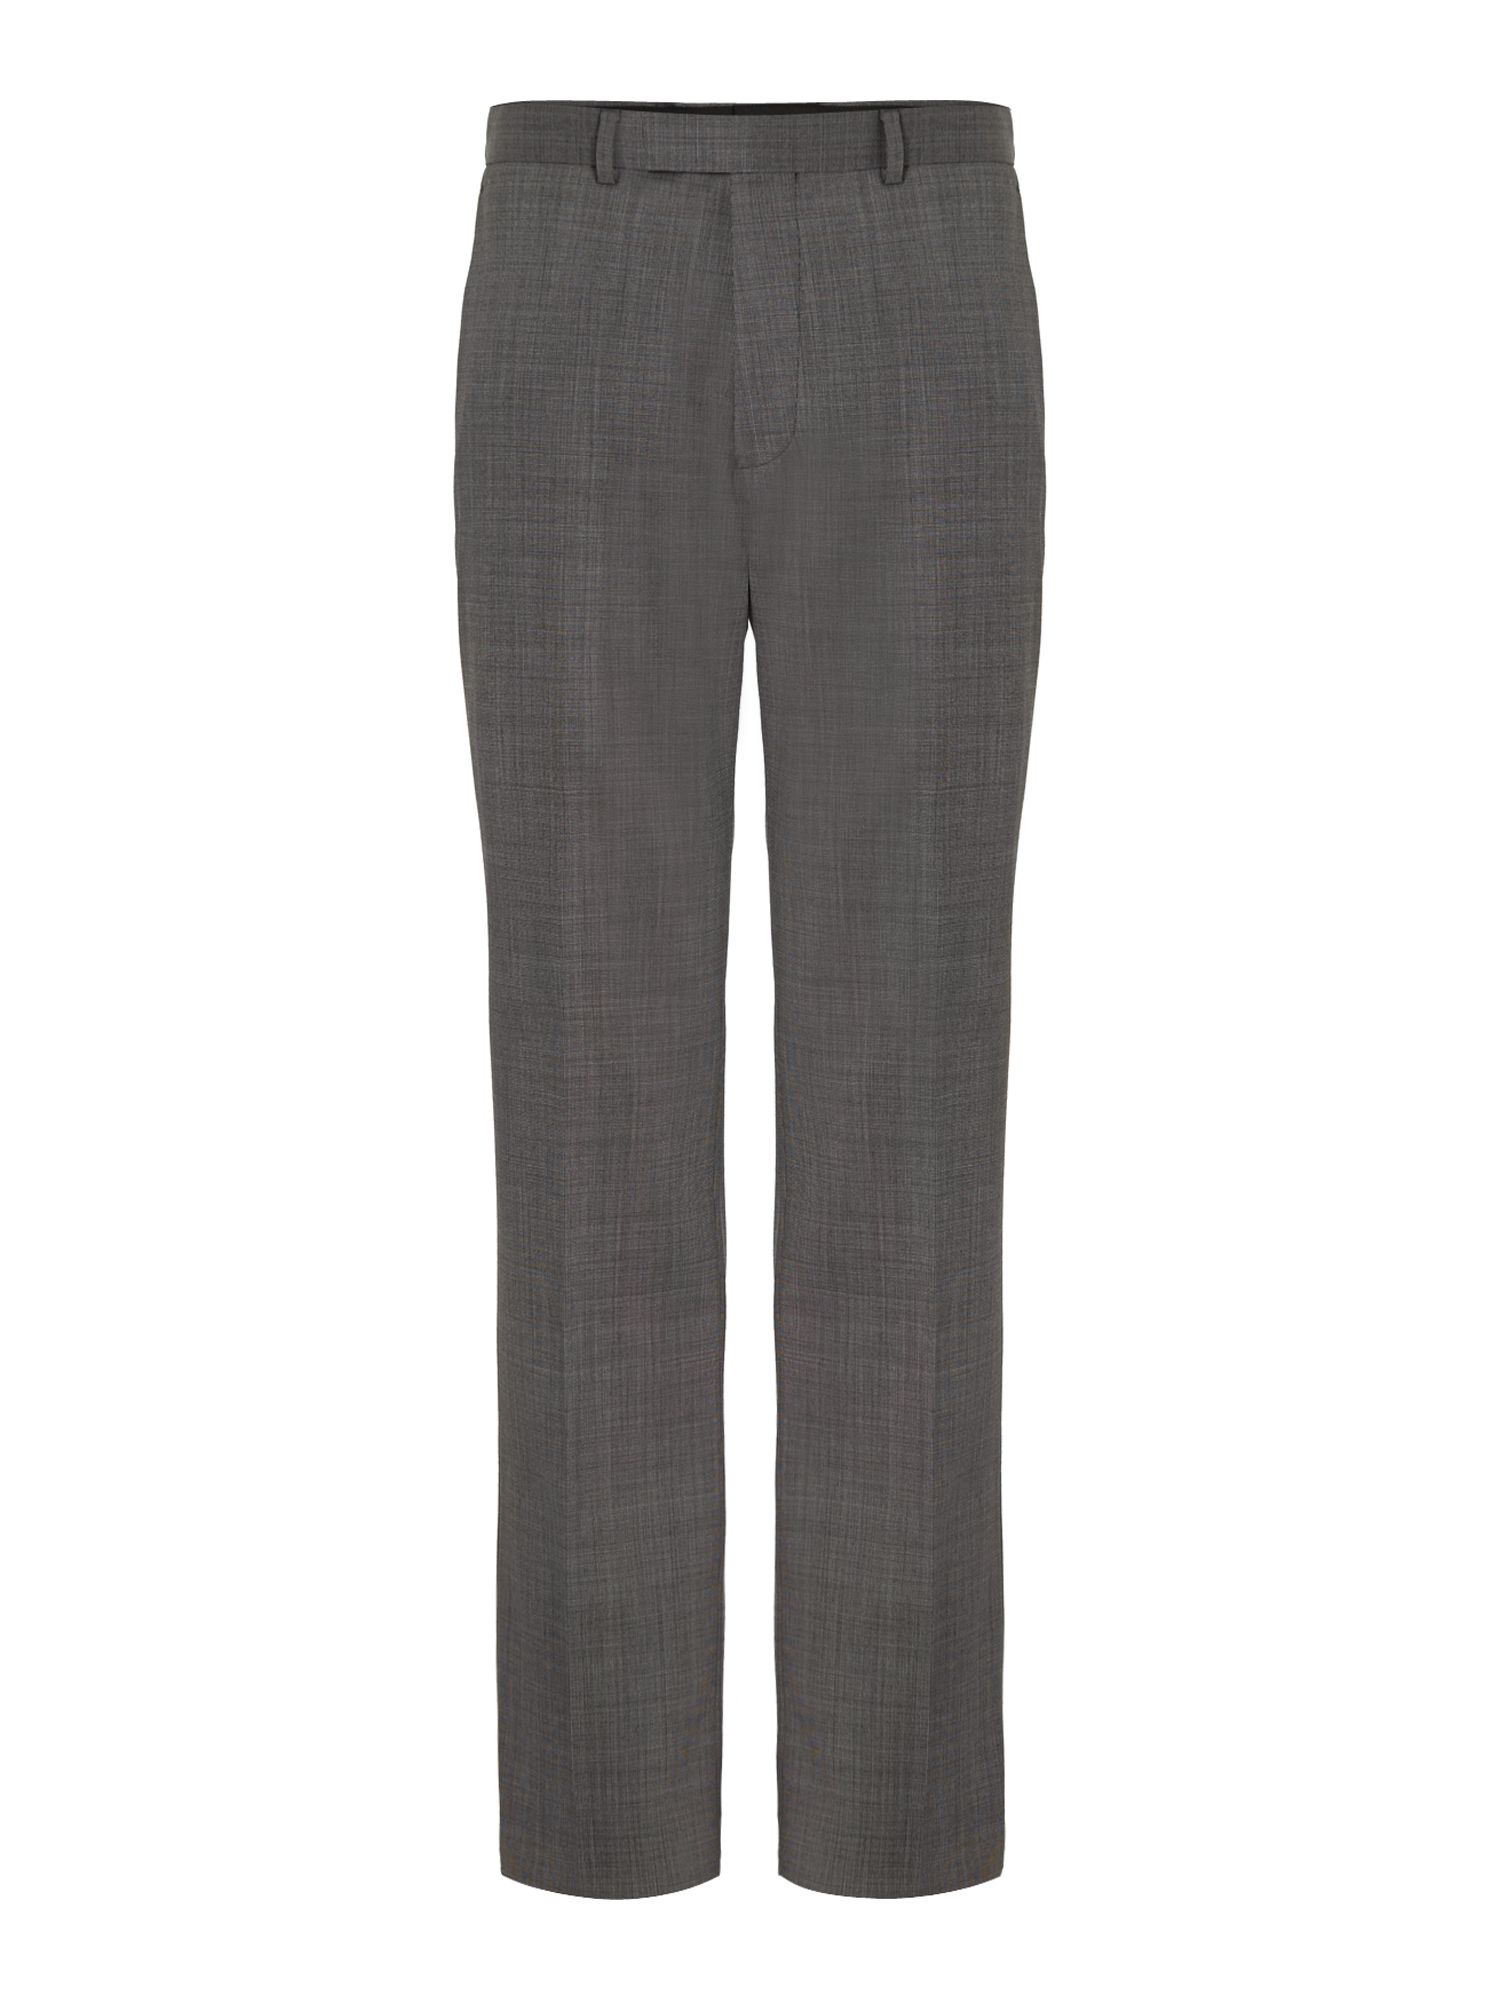 Dumbarton Texture Suit Trouser